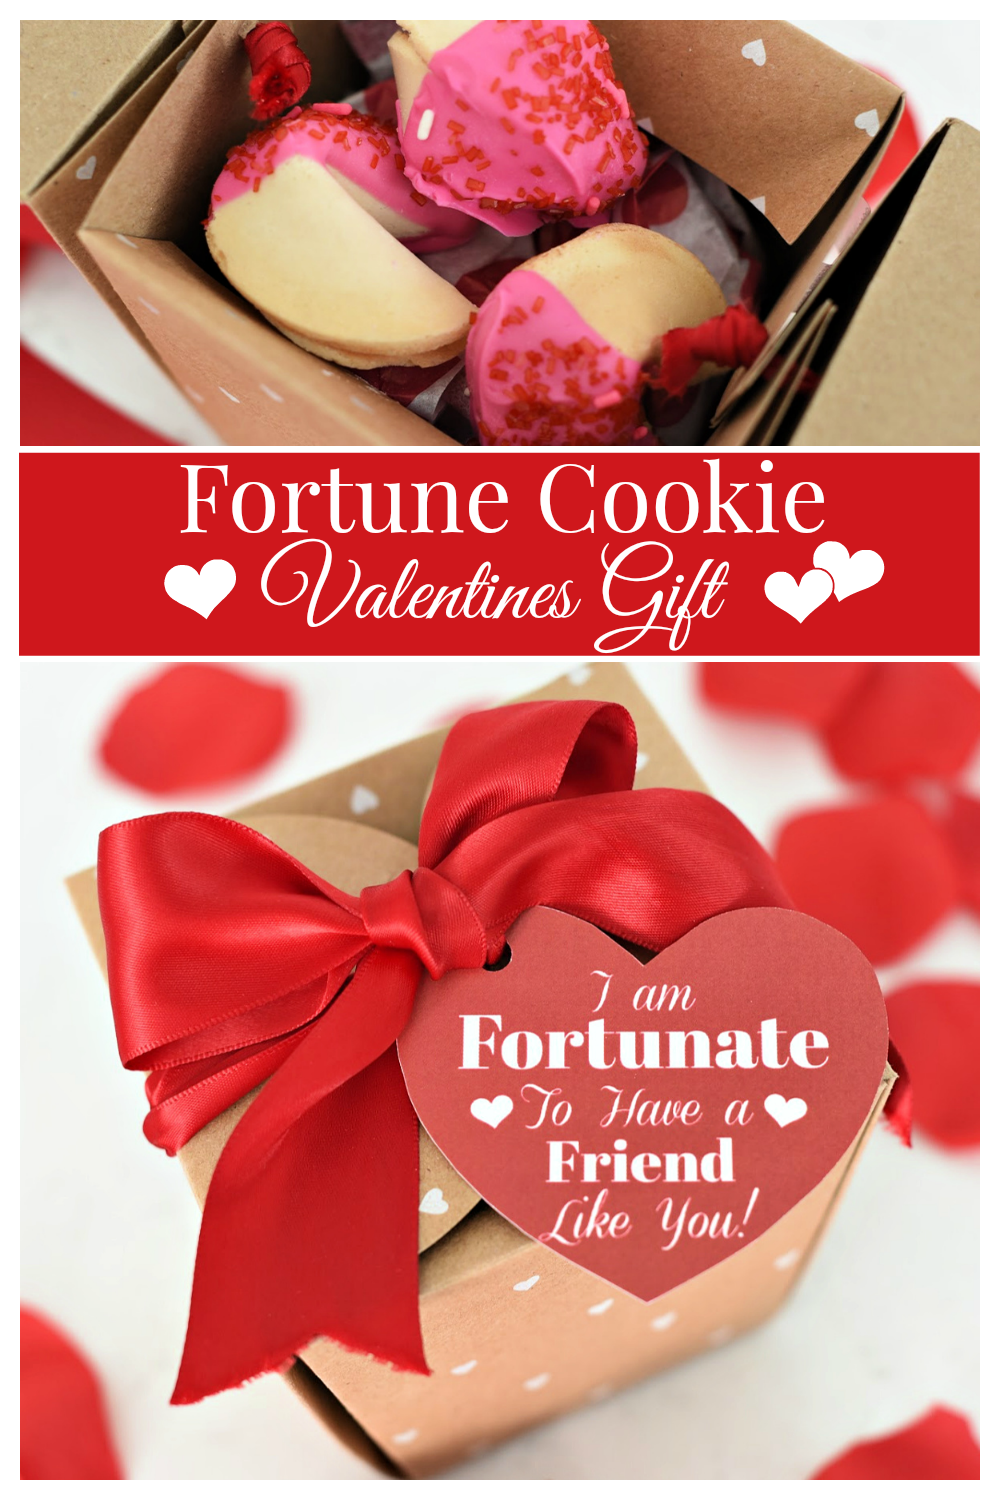 This cute fortune cookie Valentine's Day gift is the perfect way to say Happy Valentine's Day! This simple Valentine's Day gift is fun and quick to put together. #Valentinesday #valentinesdaygifts #funvalentinesgifts #happyvalentinesday